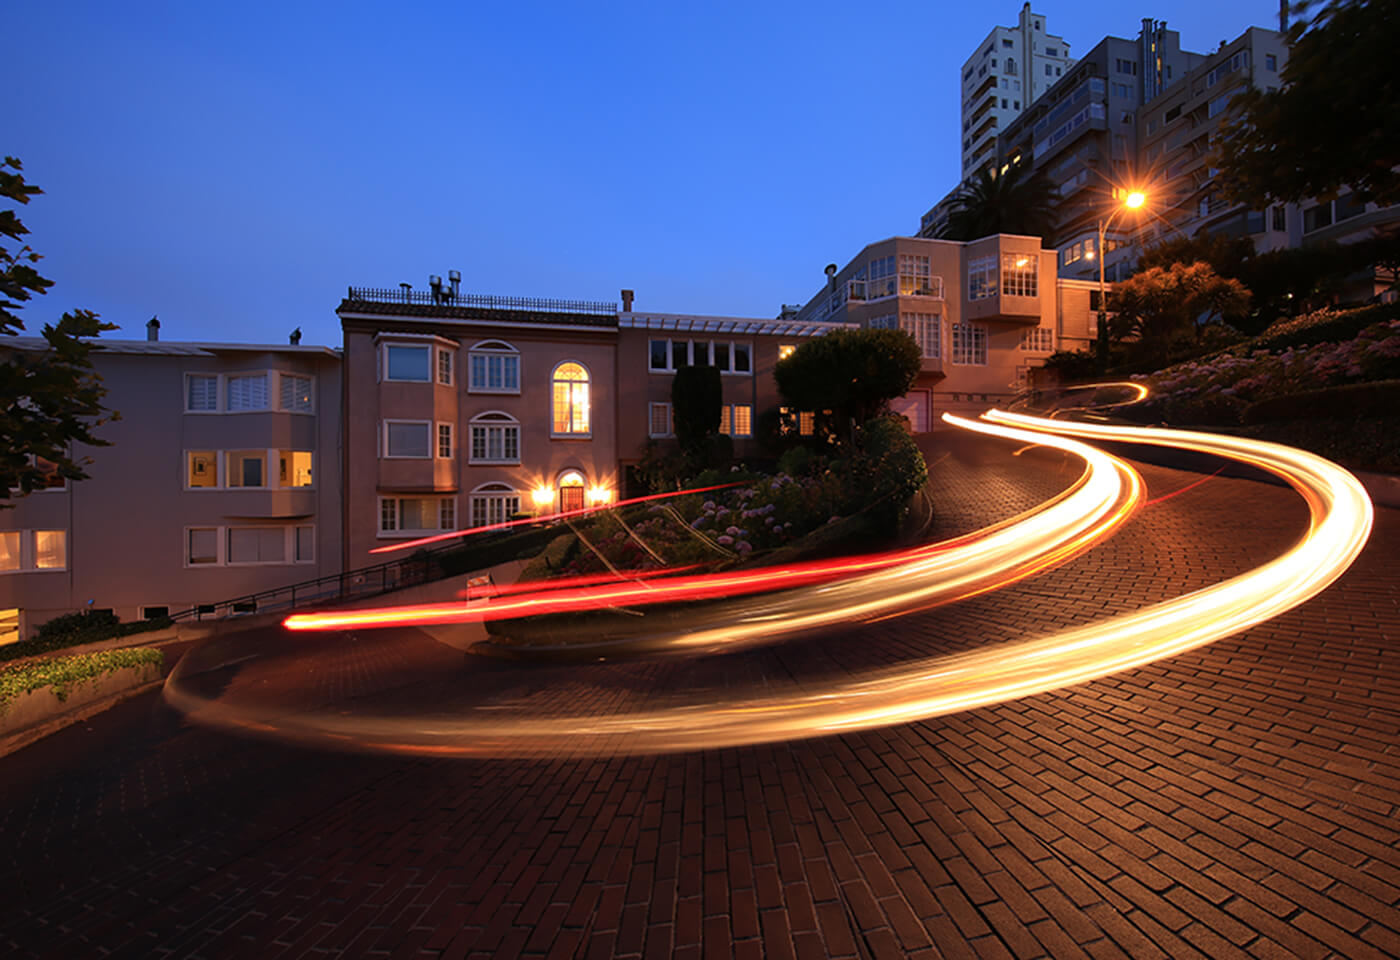 Image of a light trail left by a car on a winding road at night taken with the Canon EF 11-24mm f4L USM wide zoom lens